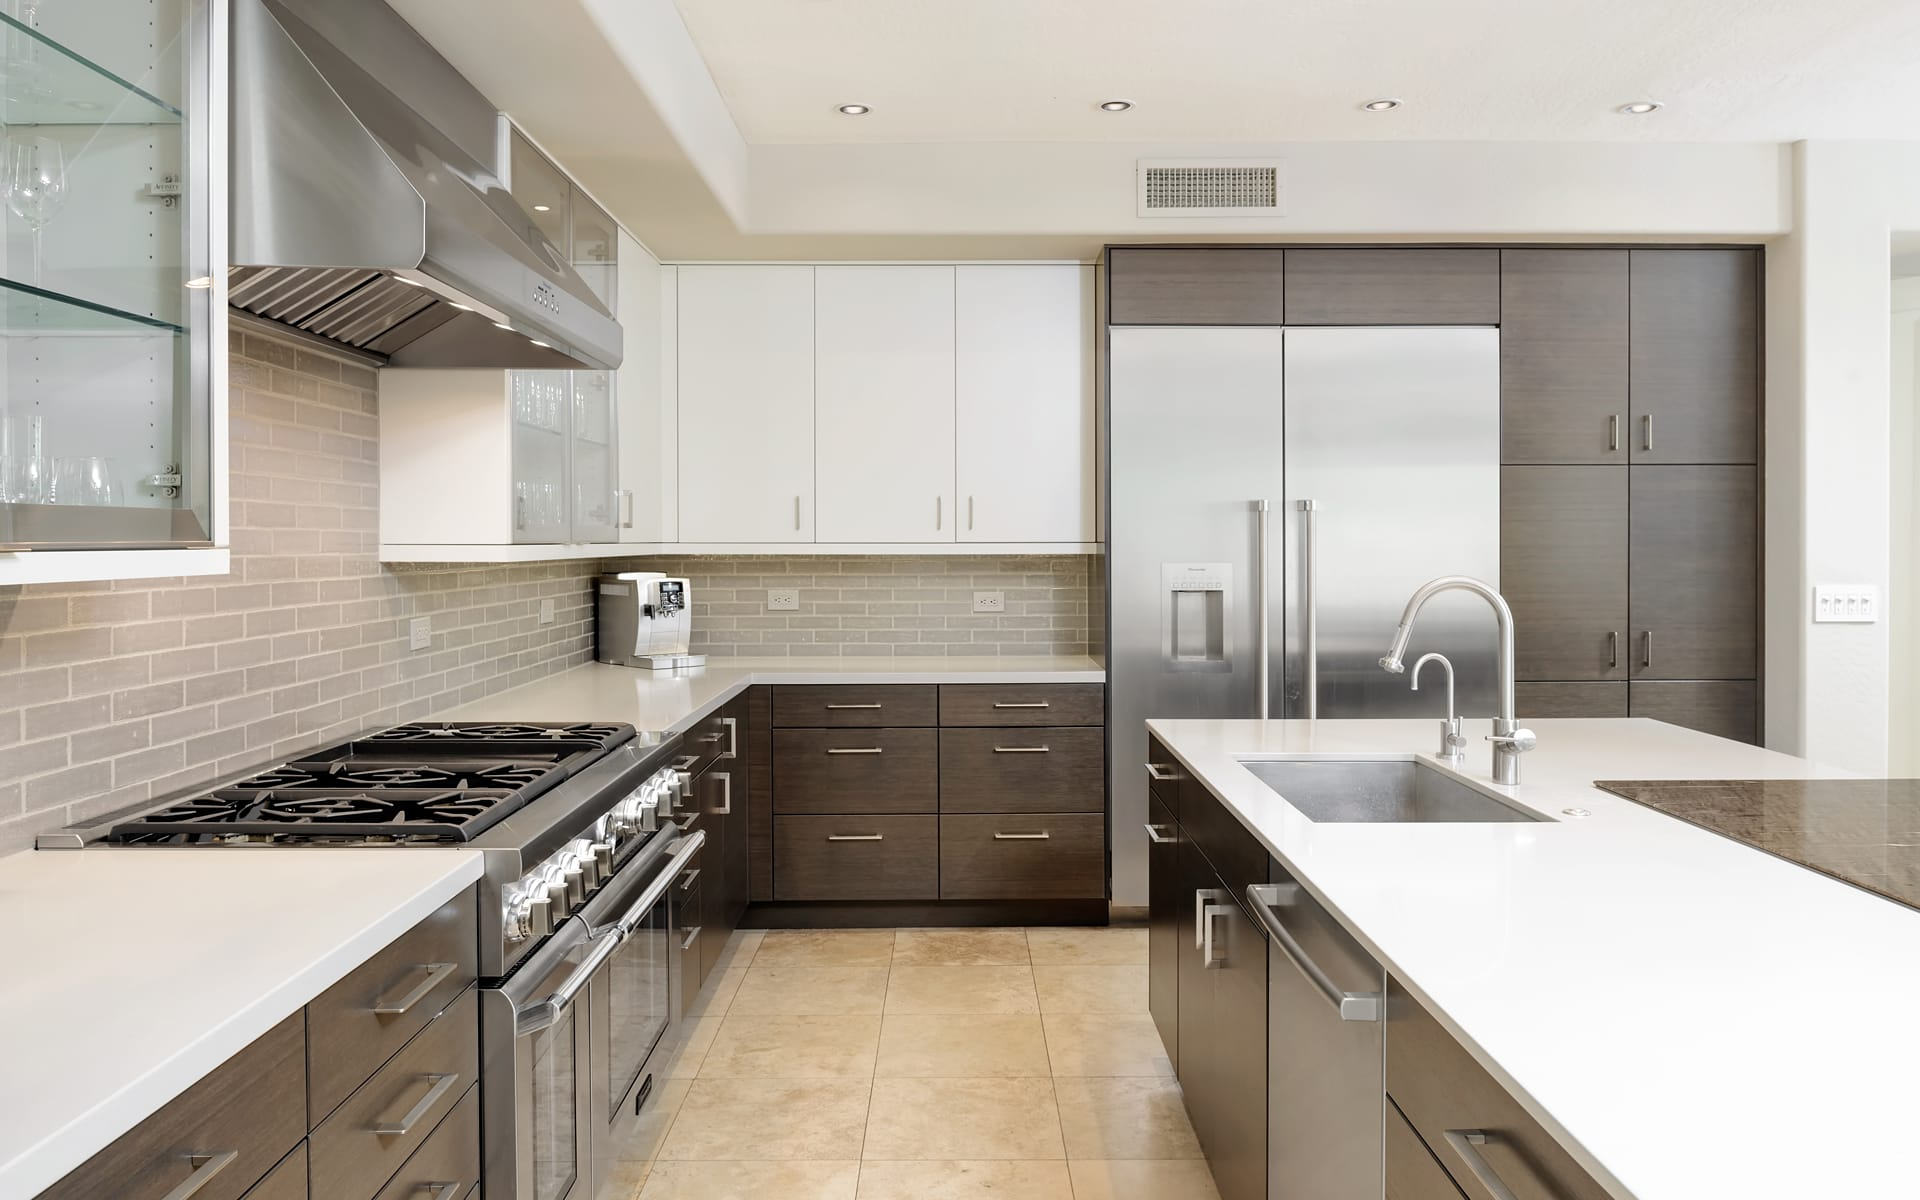 Contemporary Kitchens 45 - Affinity Kitchens